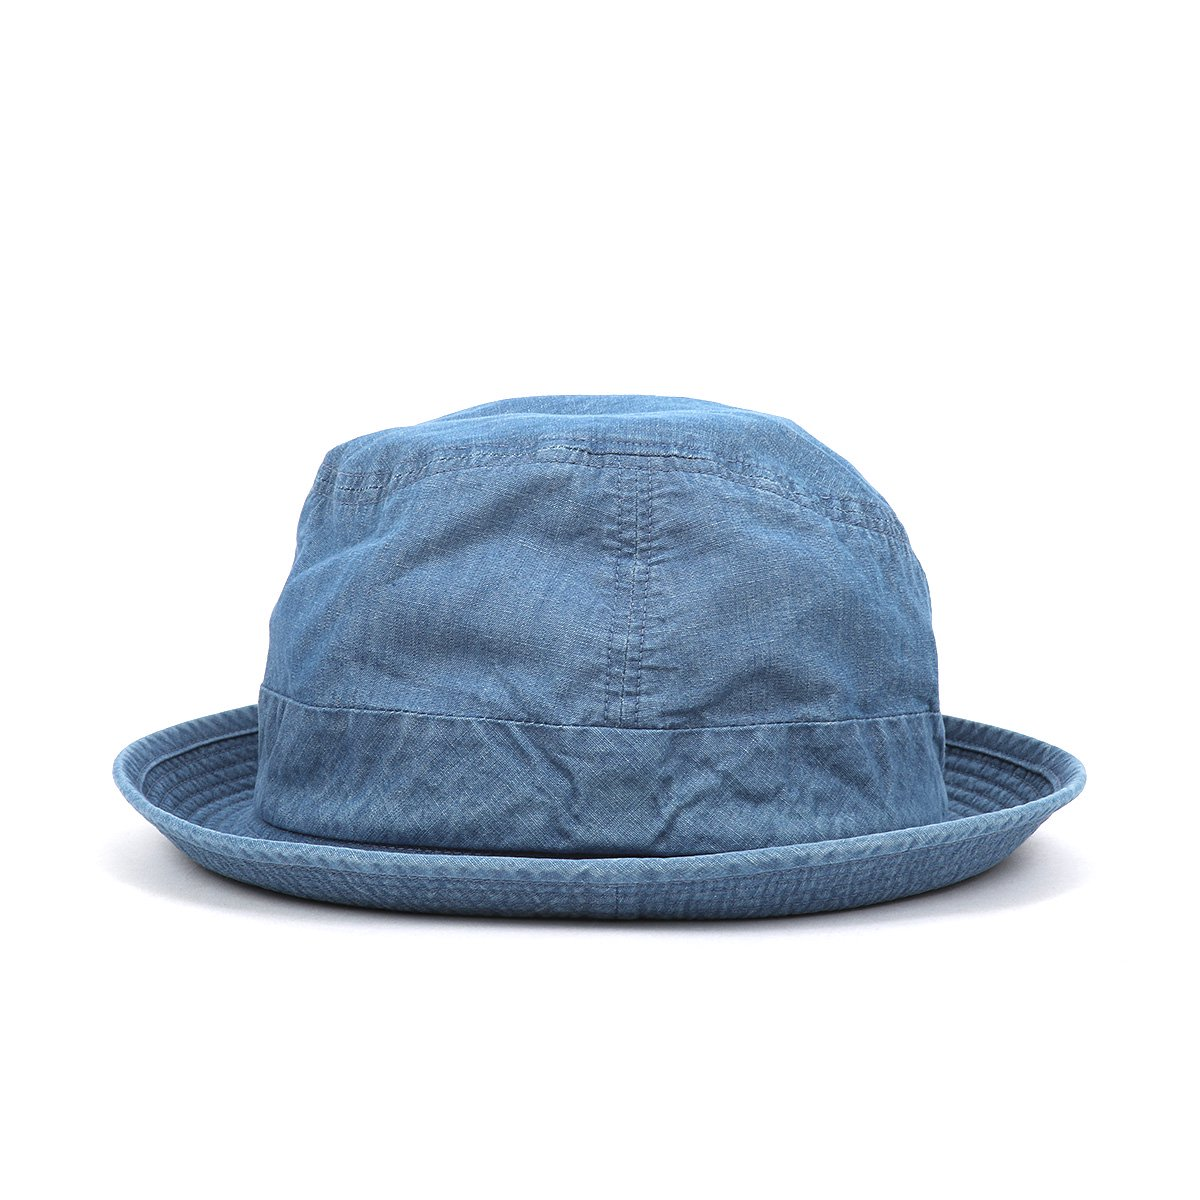 CHAMBRAY COMPACT HAT 詳細画像1